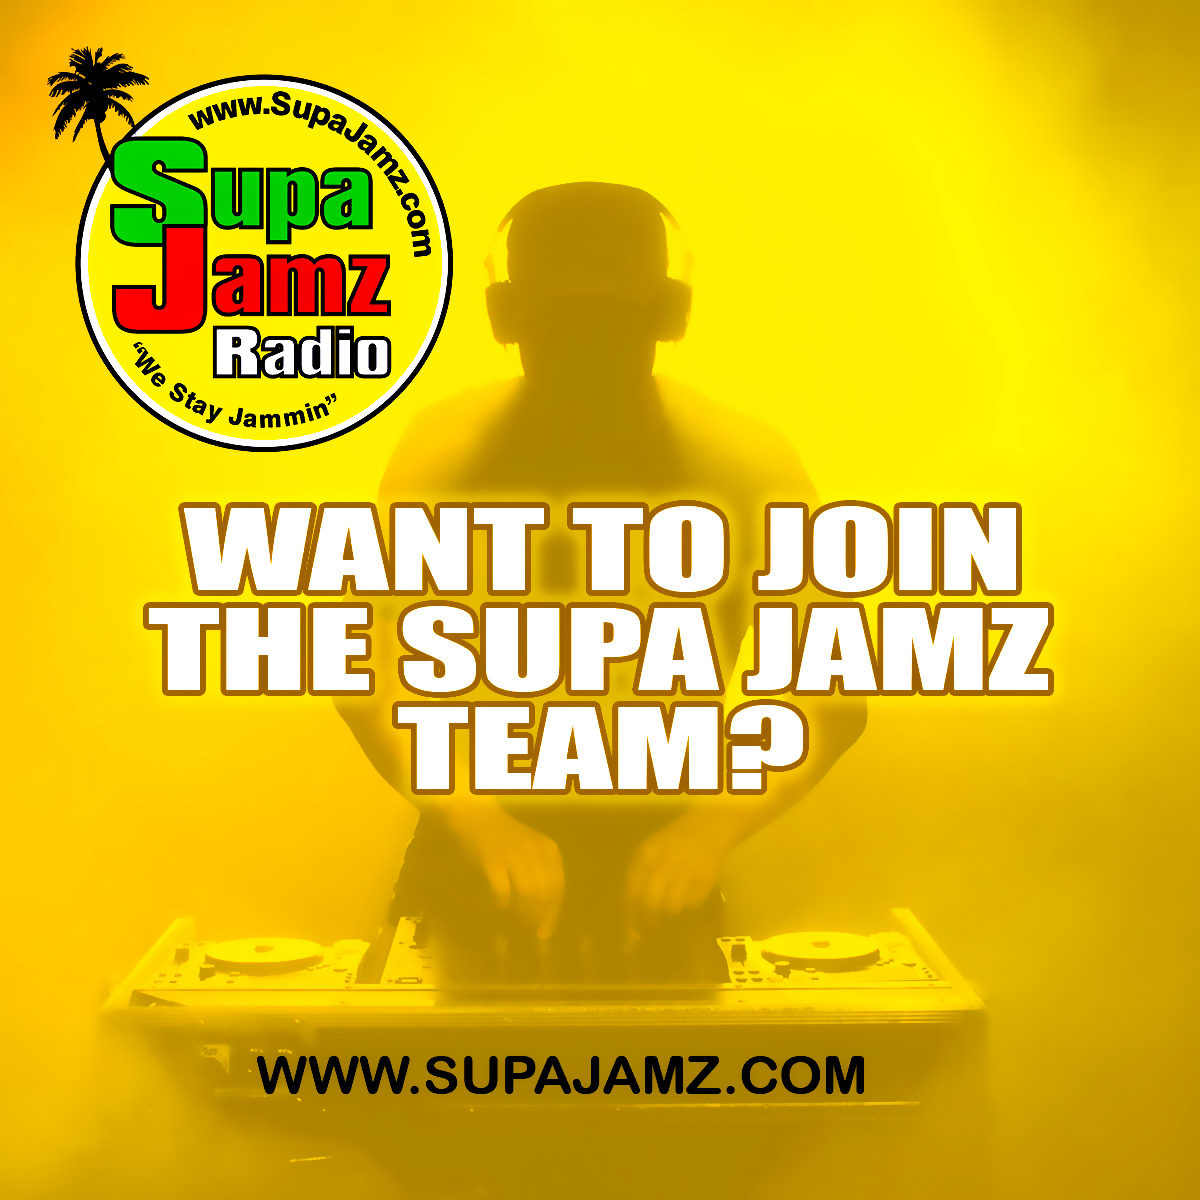 WANT TO JOIN OUR TEAM?